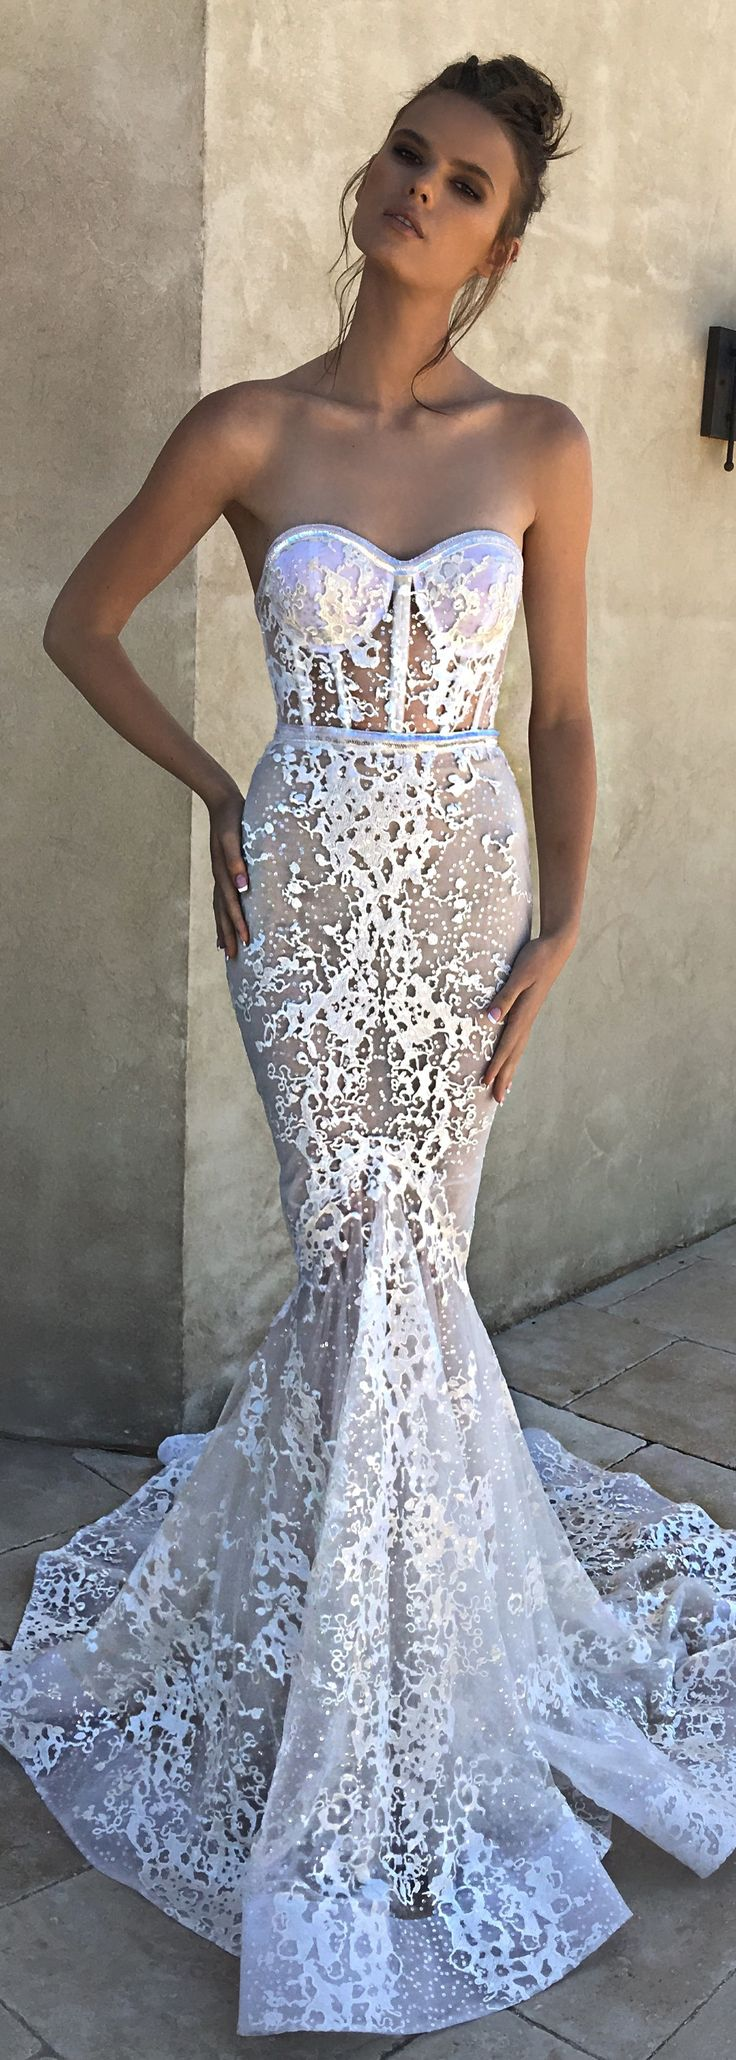 Wedding Dresses : Lace fitted wedding dress by BERTA Spring 2018 ...